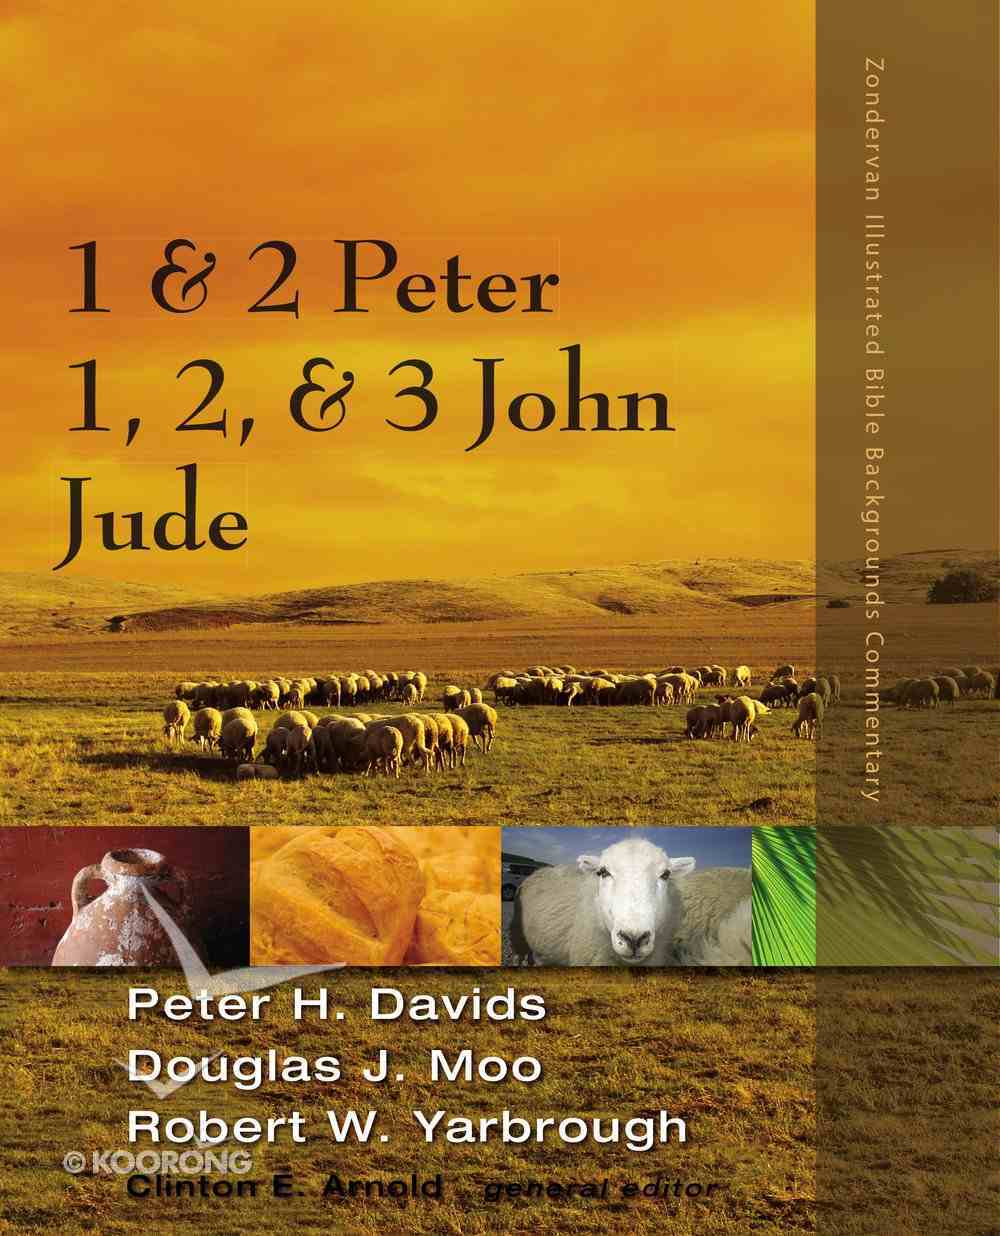 1 & 2 Peter, 1, 2, & 3 John & Jude (Zondervan Illustrated Bible Backgrounds Commentary Series) eBook